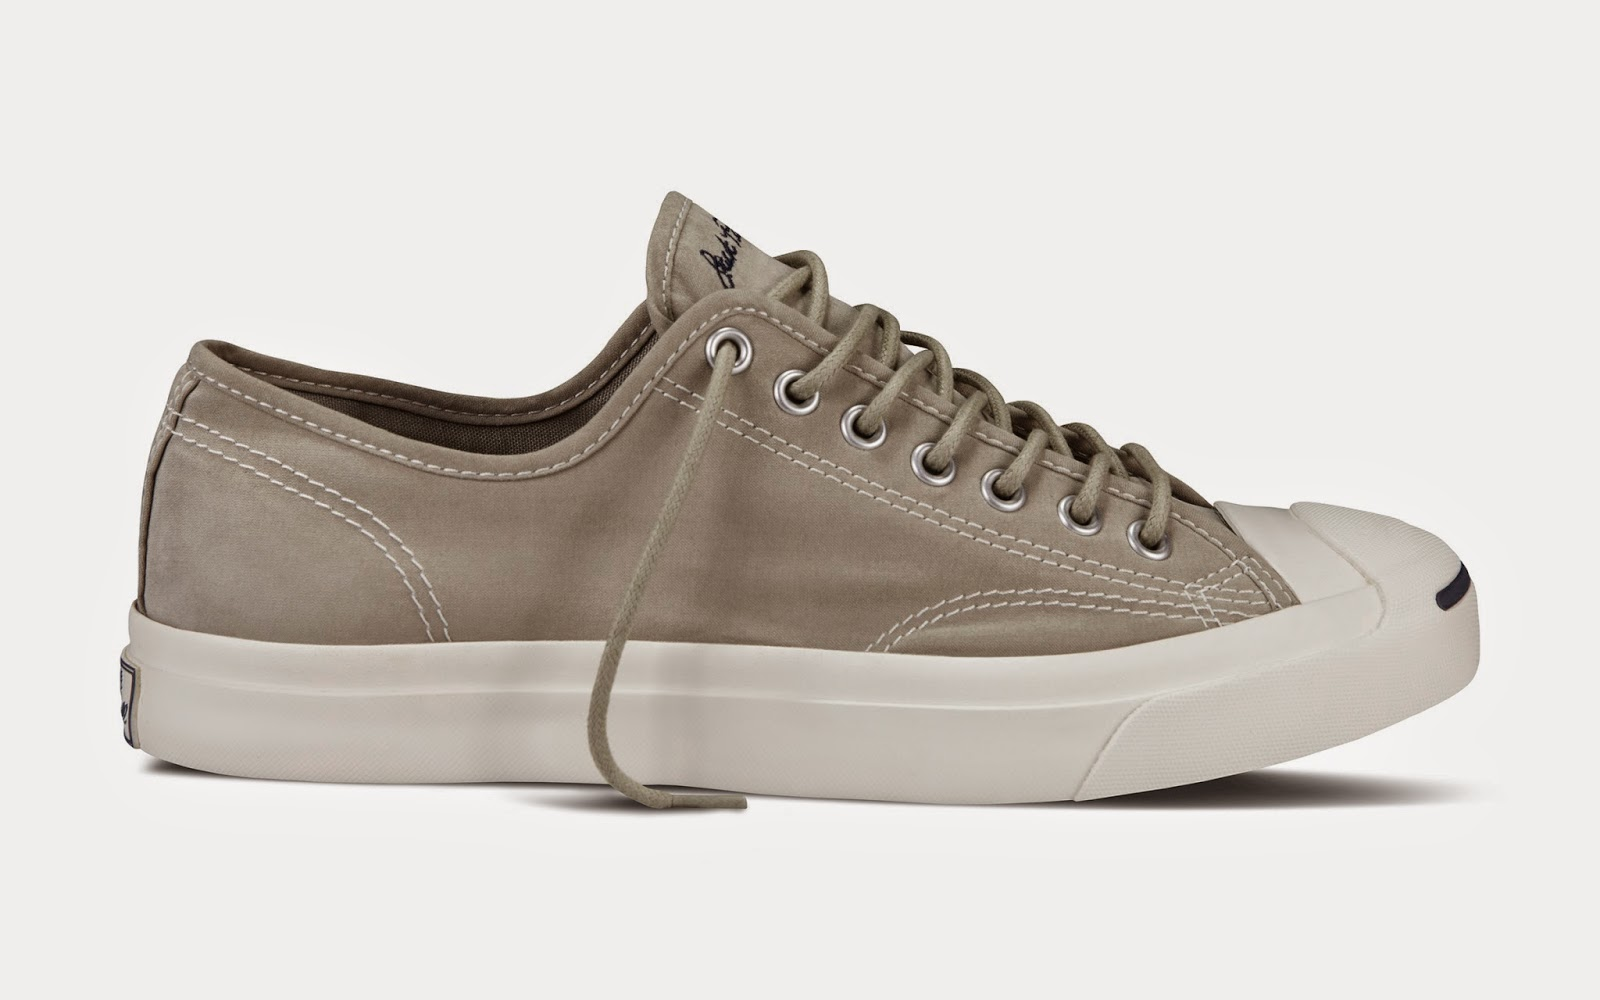 fc0316a62ec6 The Converse Jack Purcell Ox features a brushed textile upper with a tight